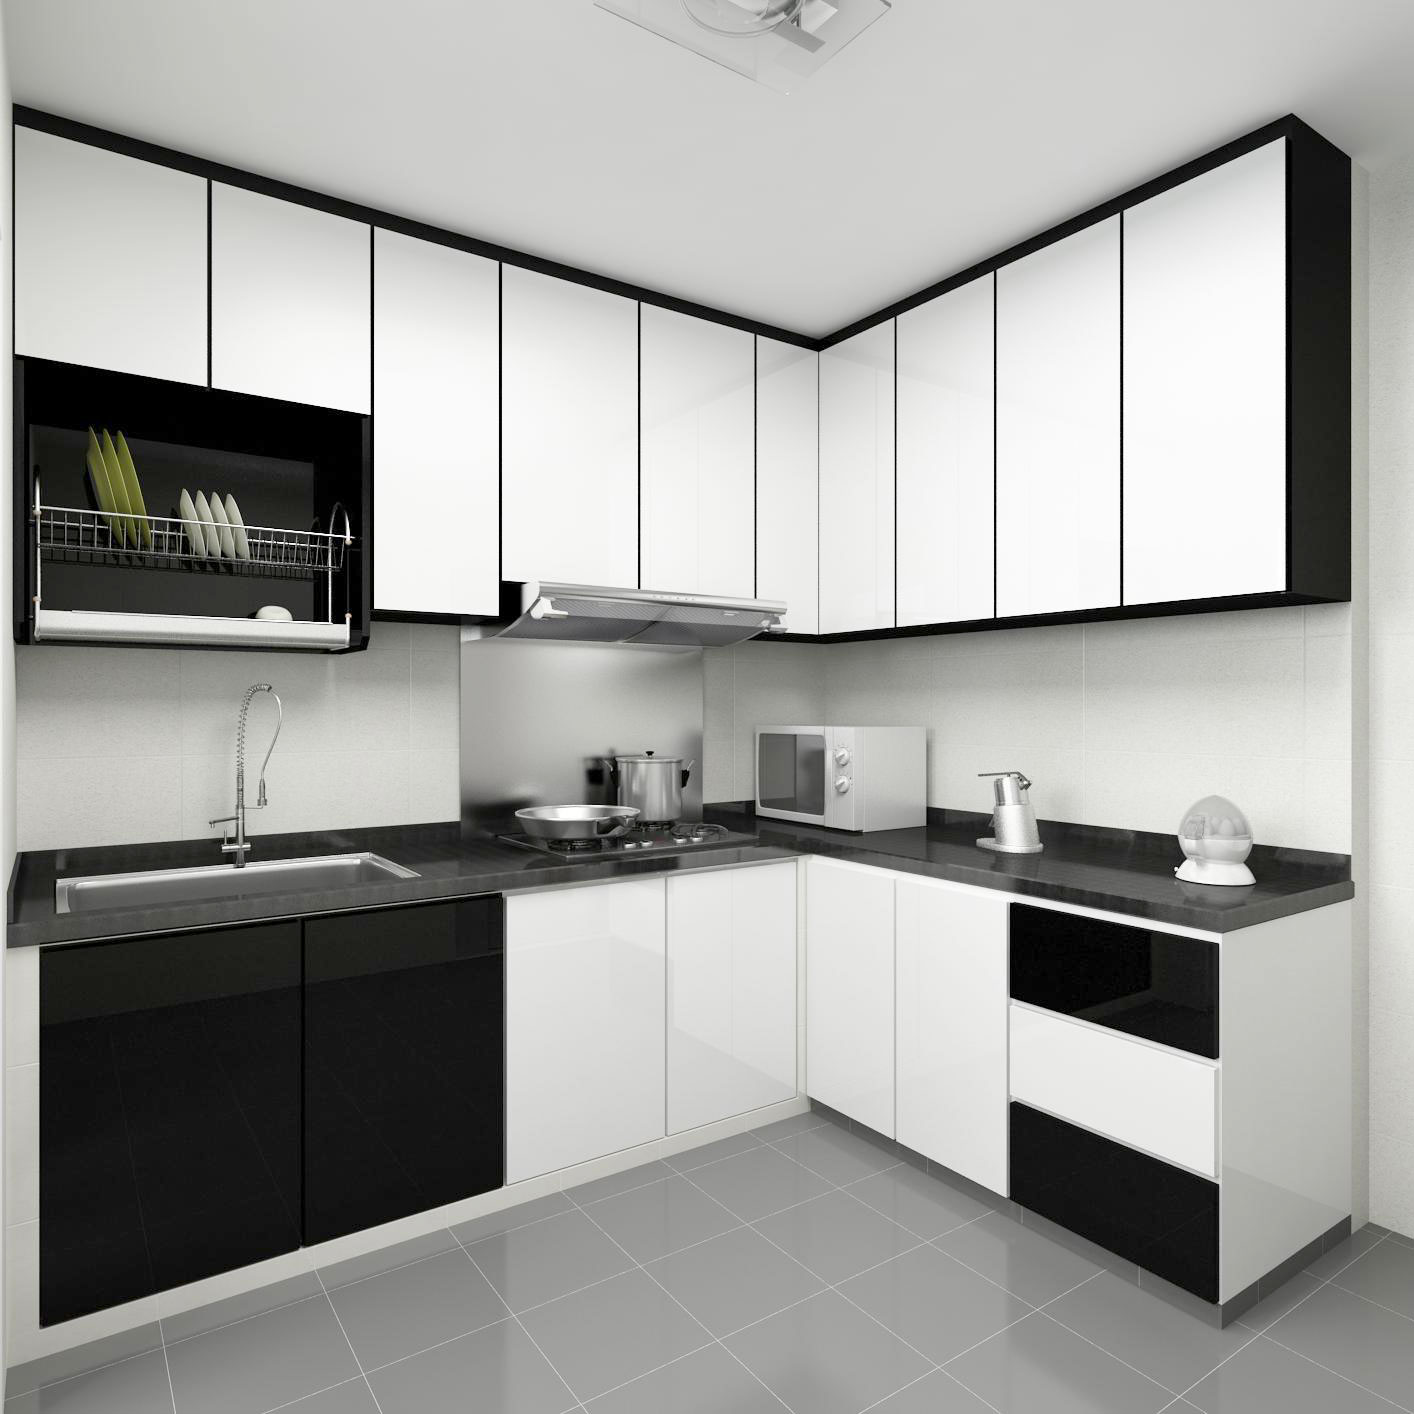 ... Modular Kitchen Designs Black And White. IN A PIGEON HOLE 3D DRAWINGS  2nd DRAFT